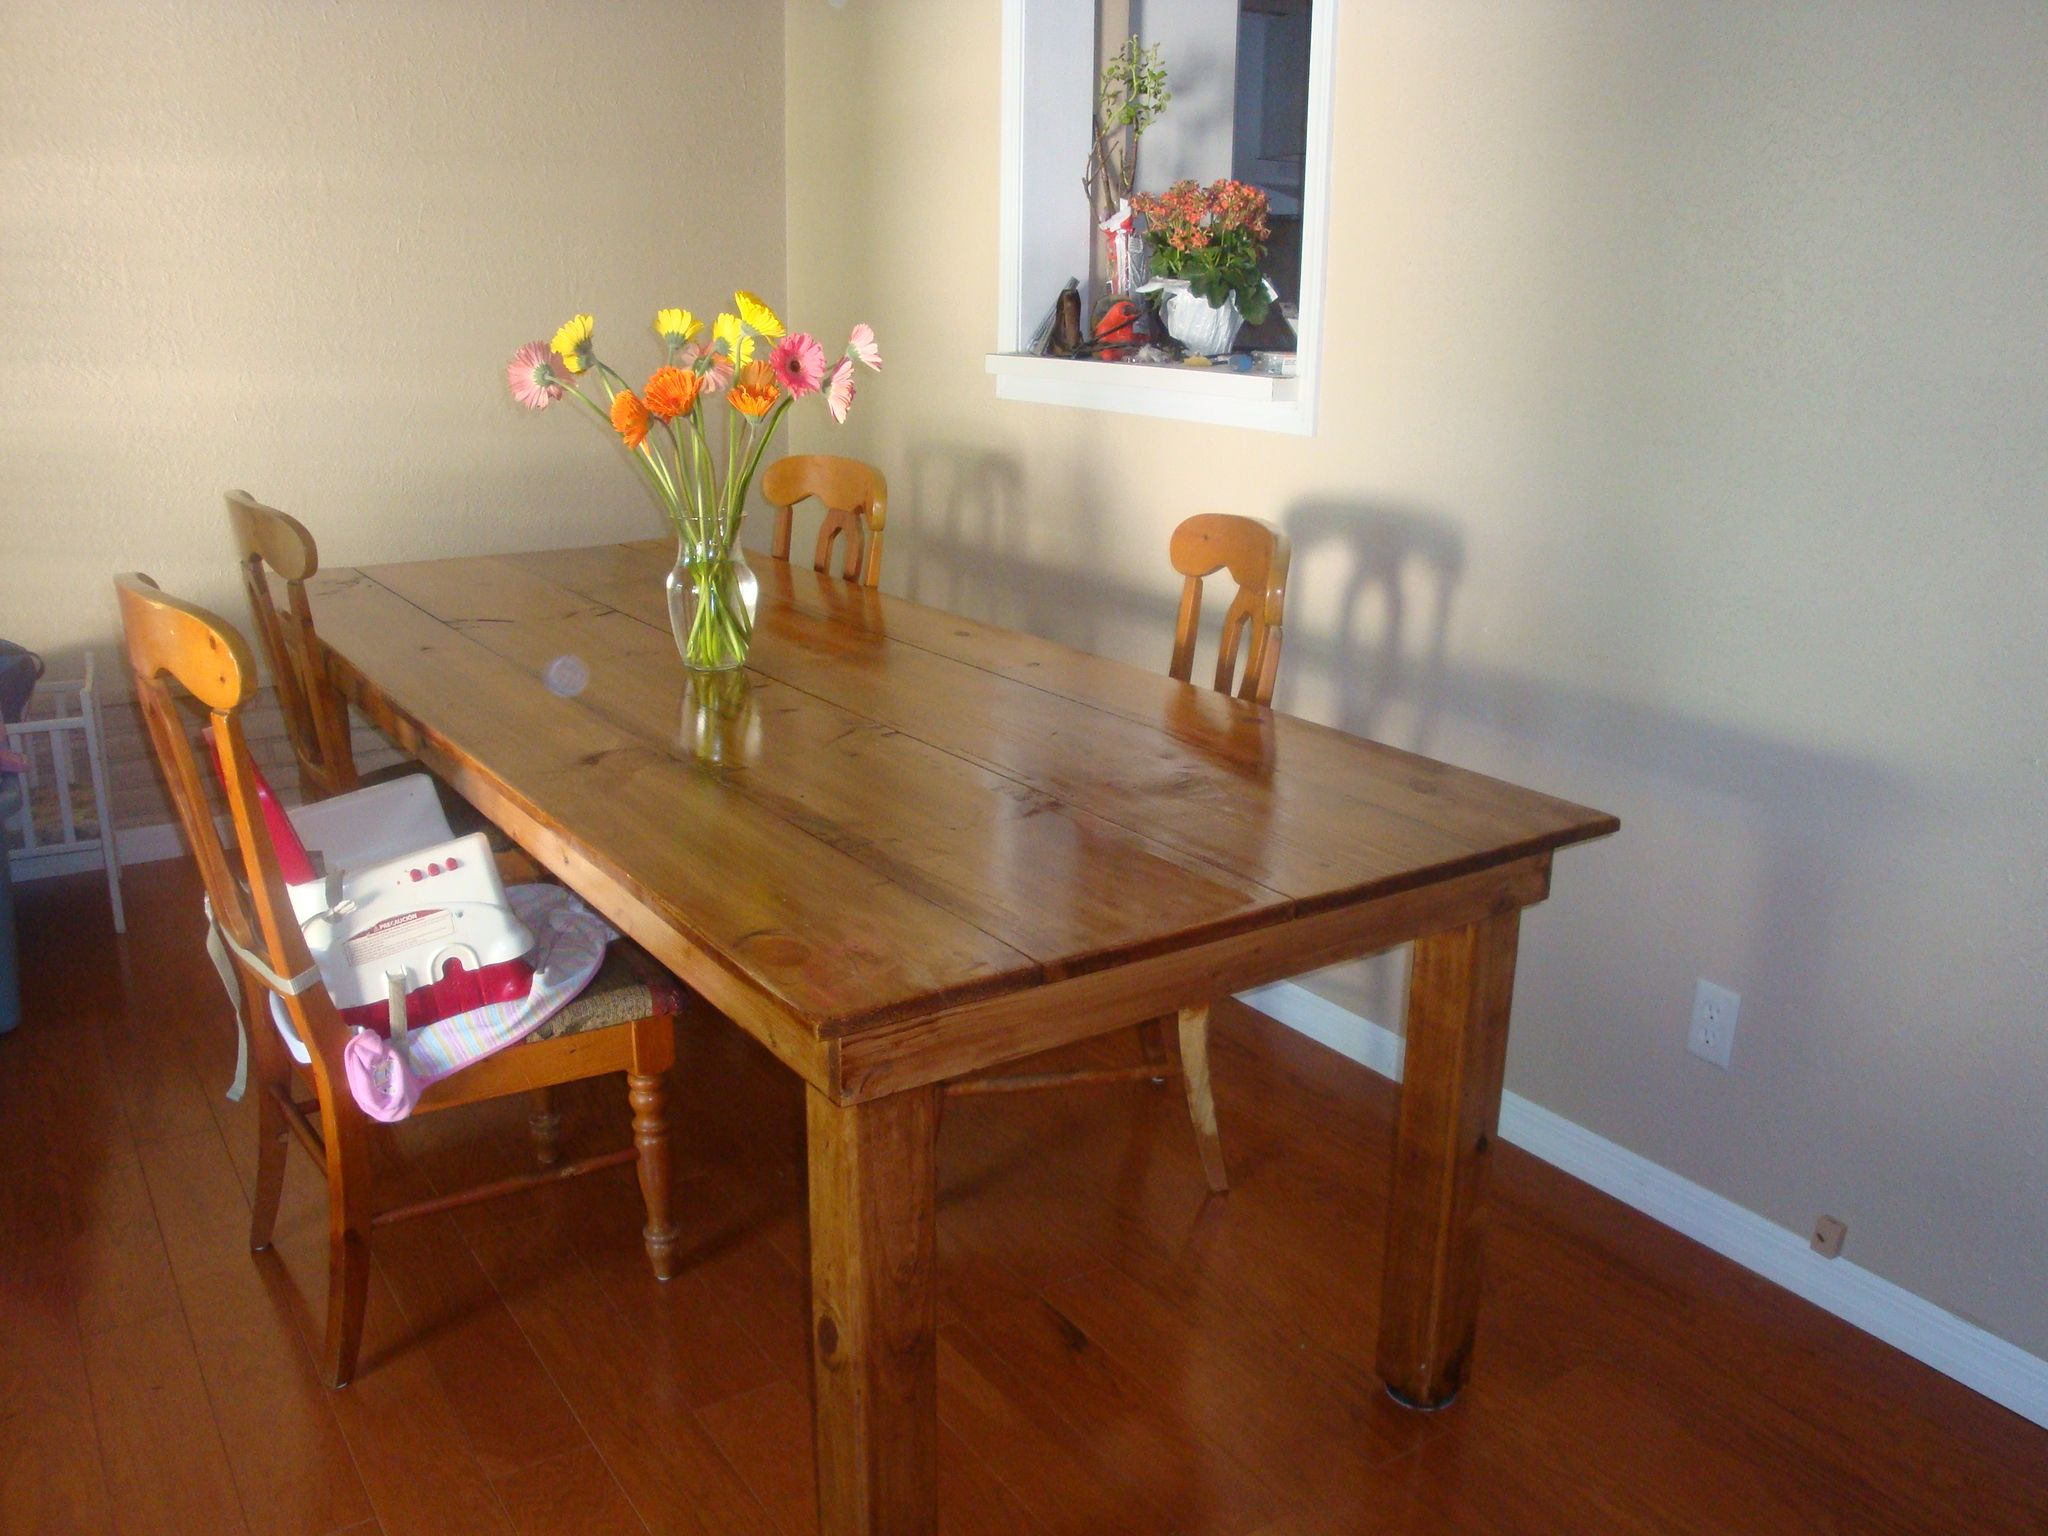 Farmhouse Dinner Table | Do It Yourself Home Projects From Ana White